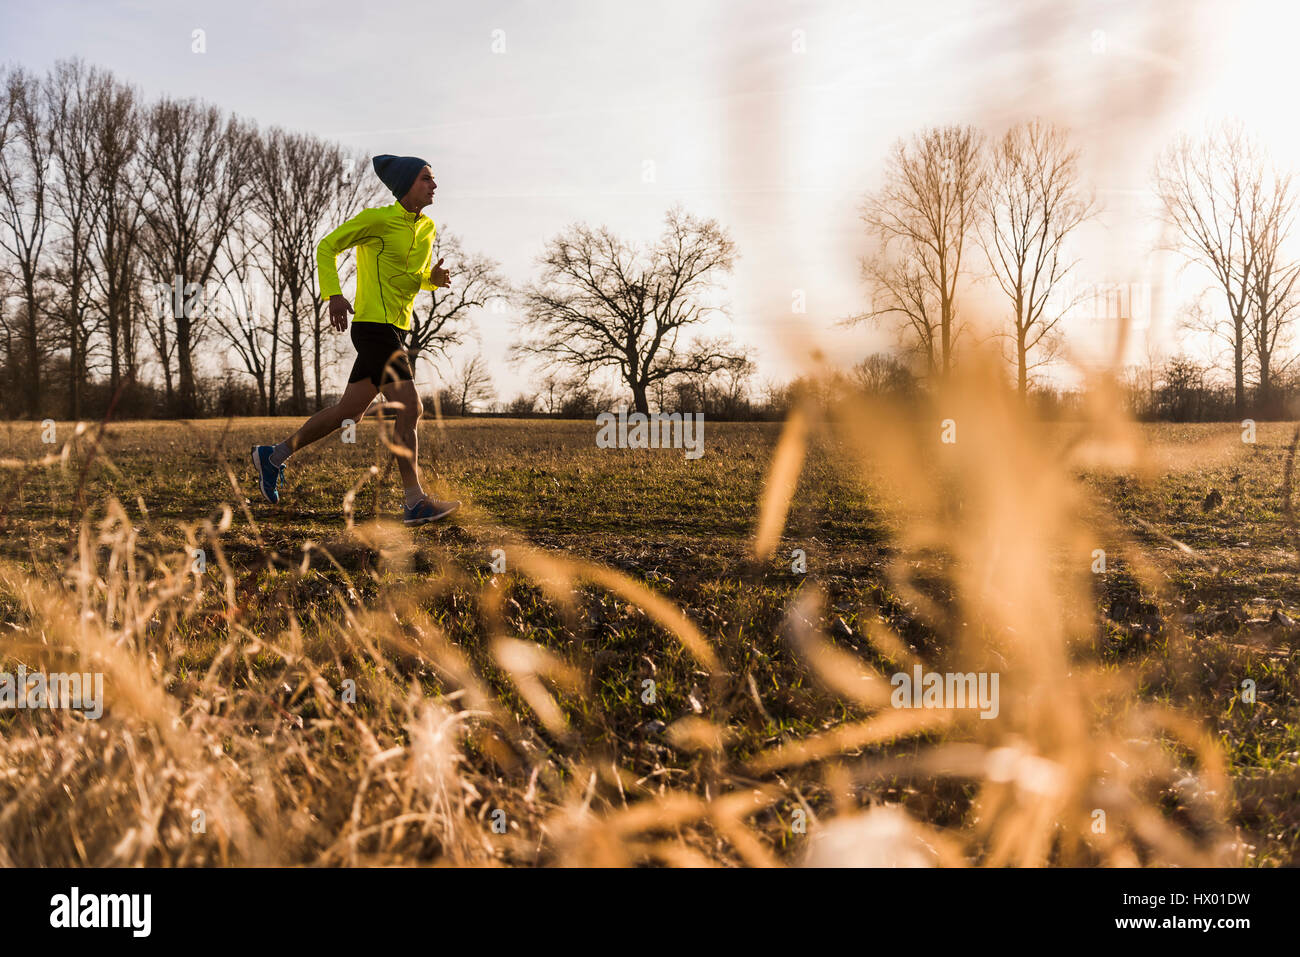 Man running in rural landscape Photo Stock